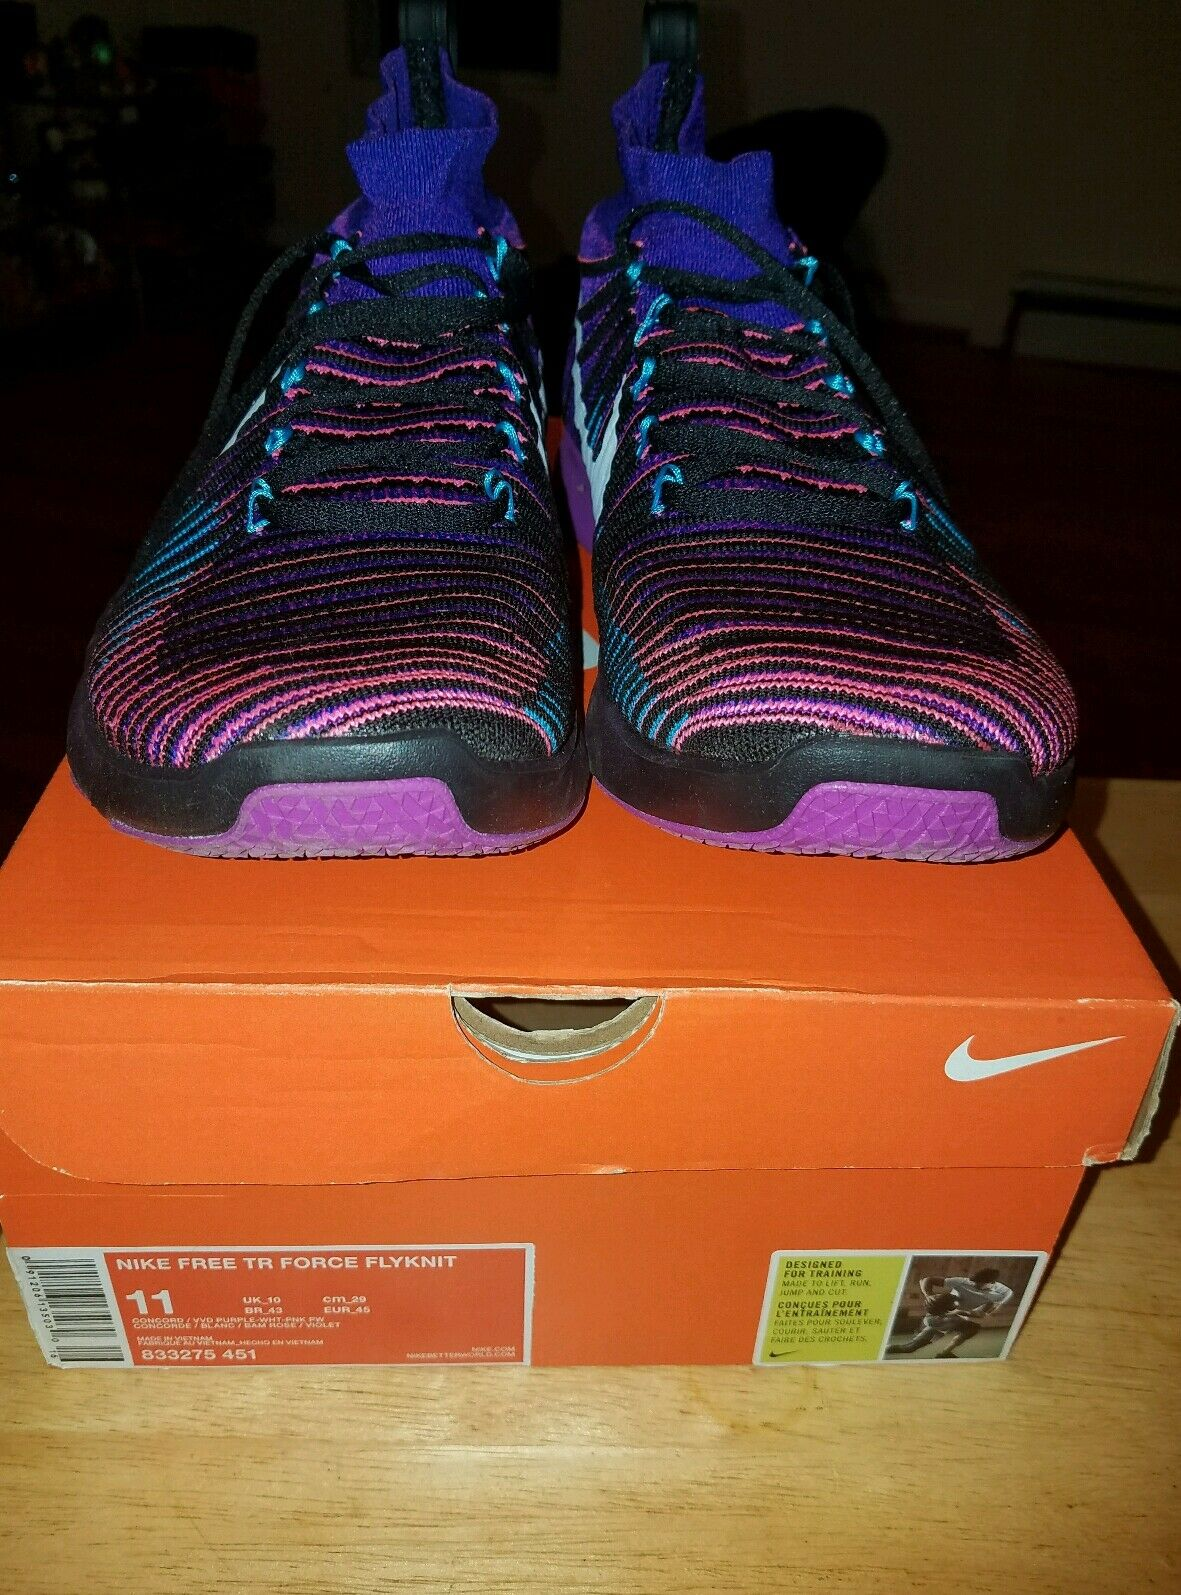 Nike Free TR Force Flyknit  Cheap and fashionable